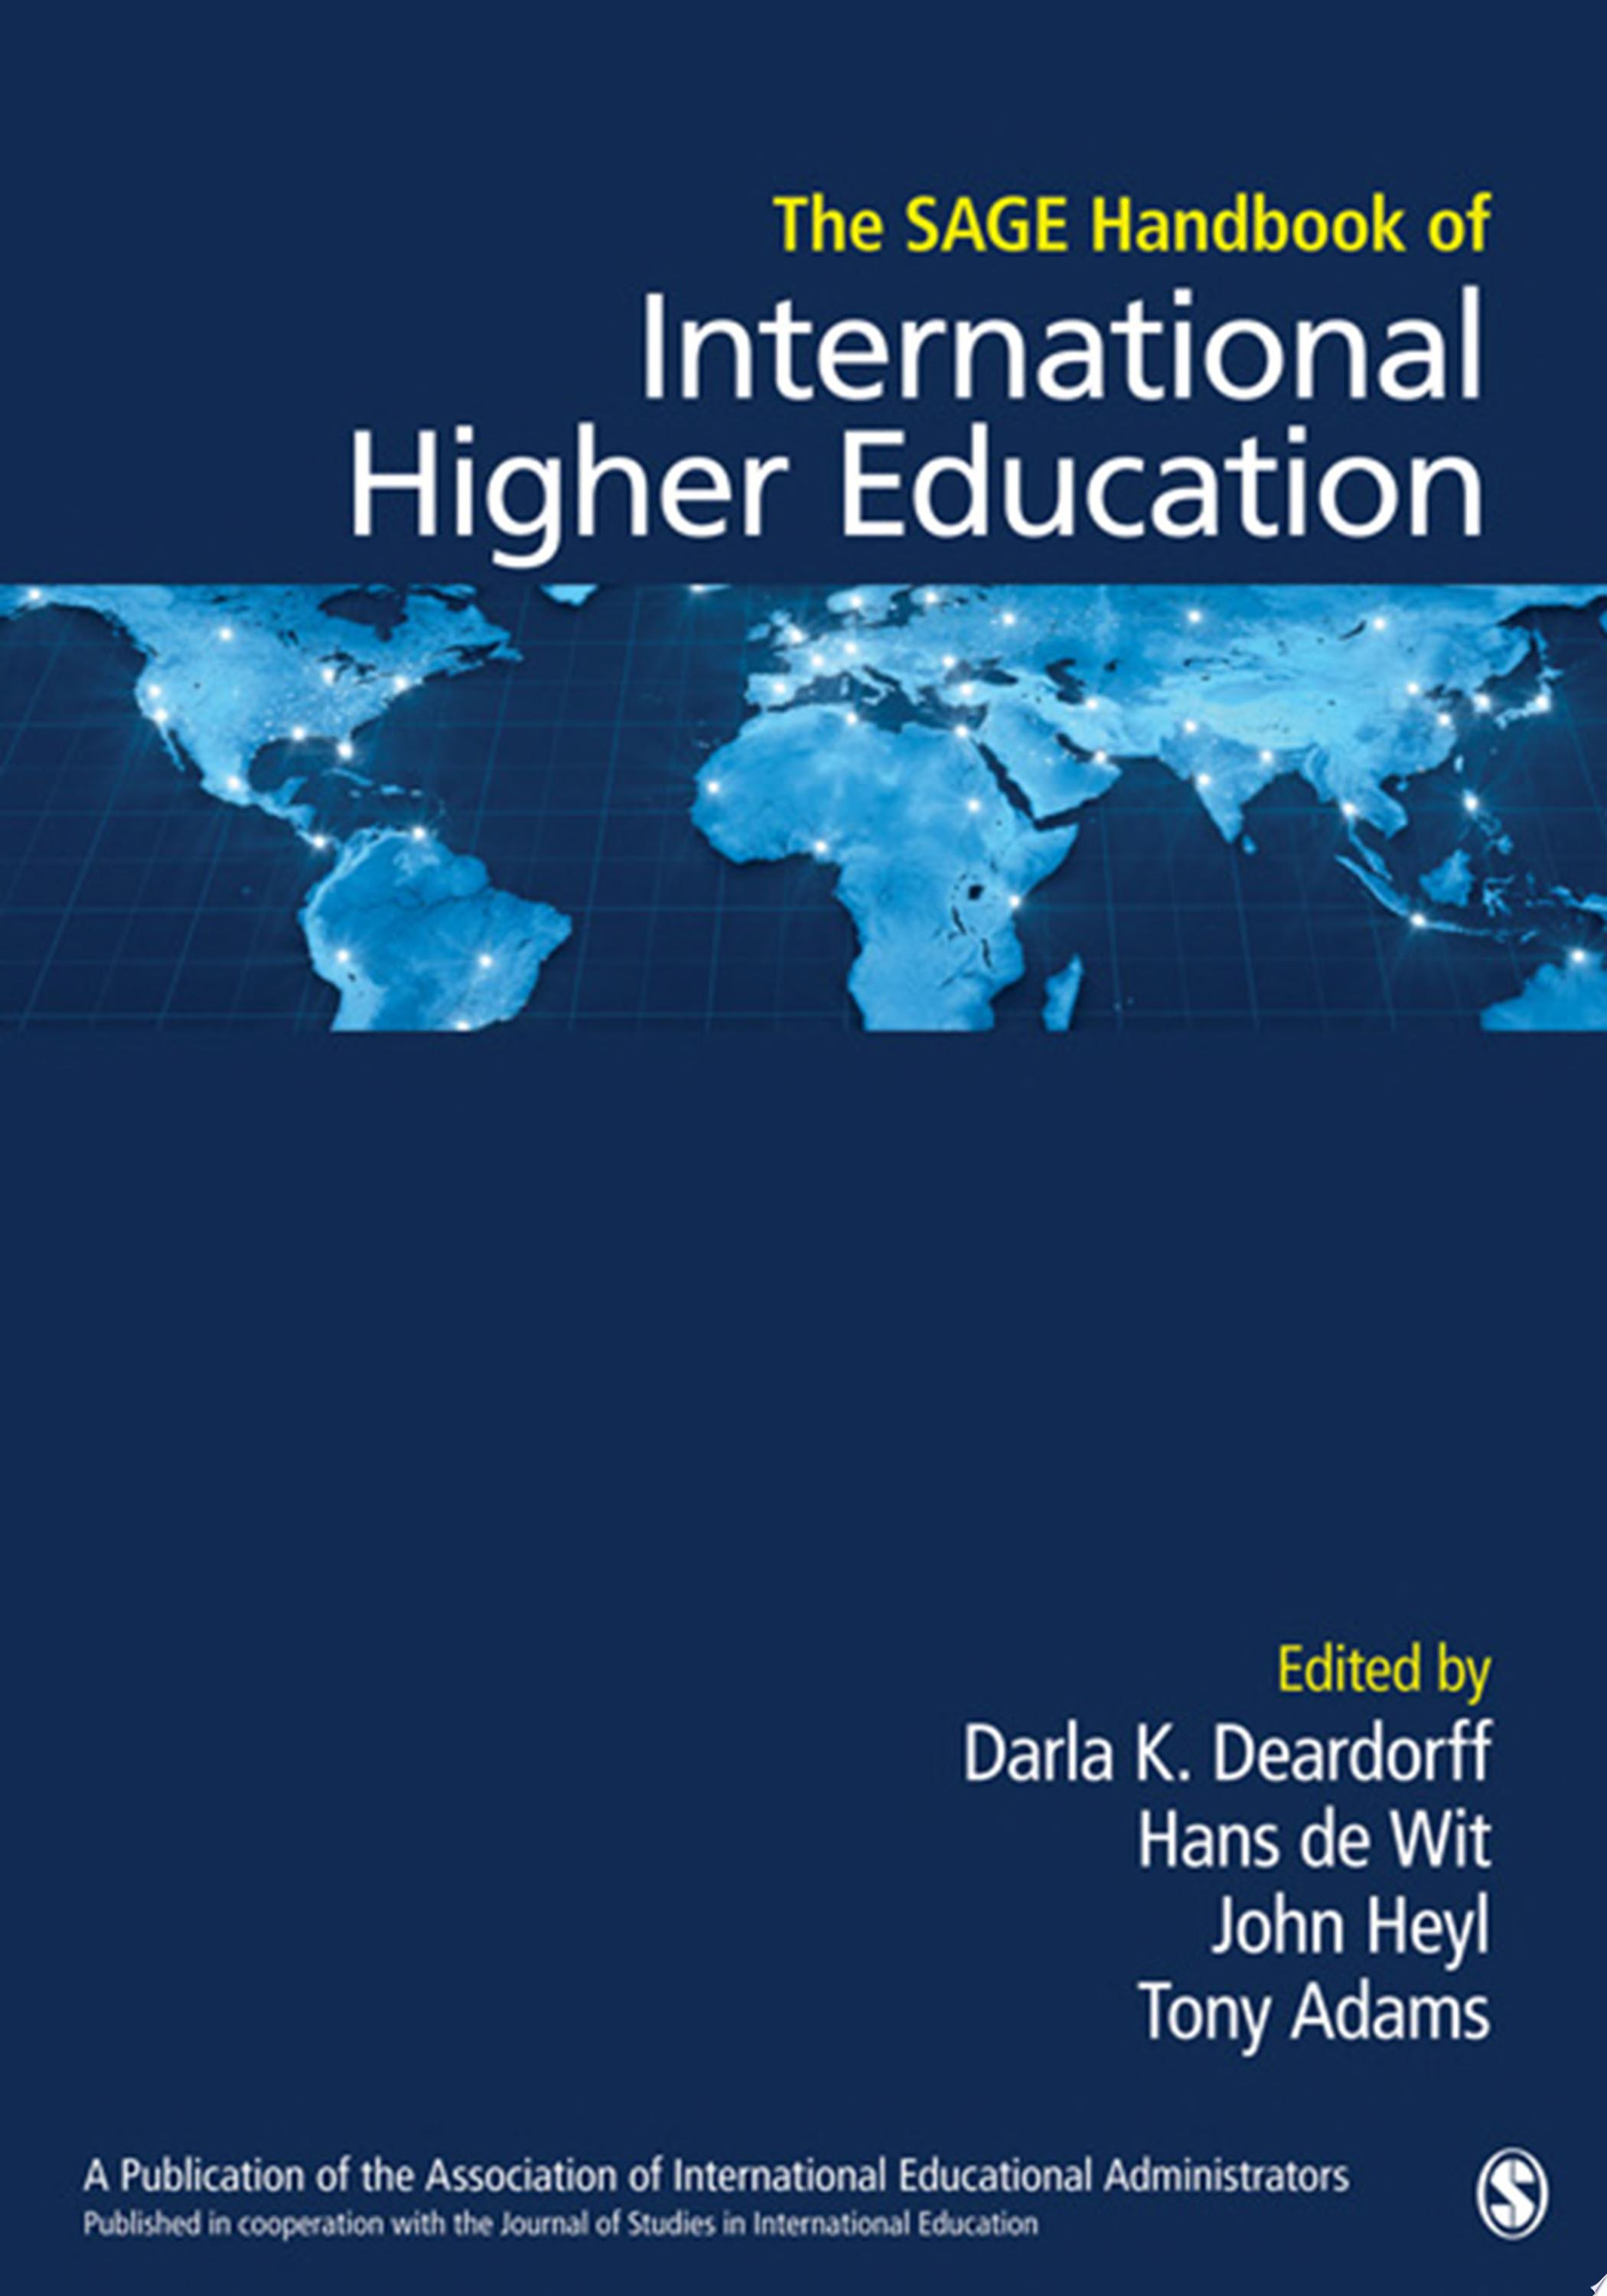 The SAGE Handbook of International Higher Education